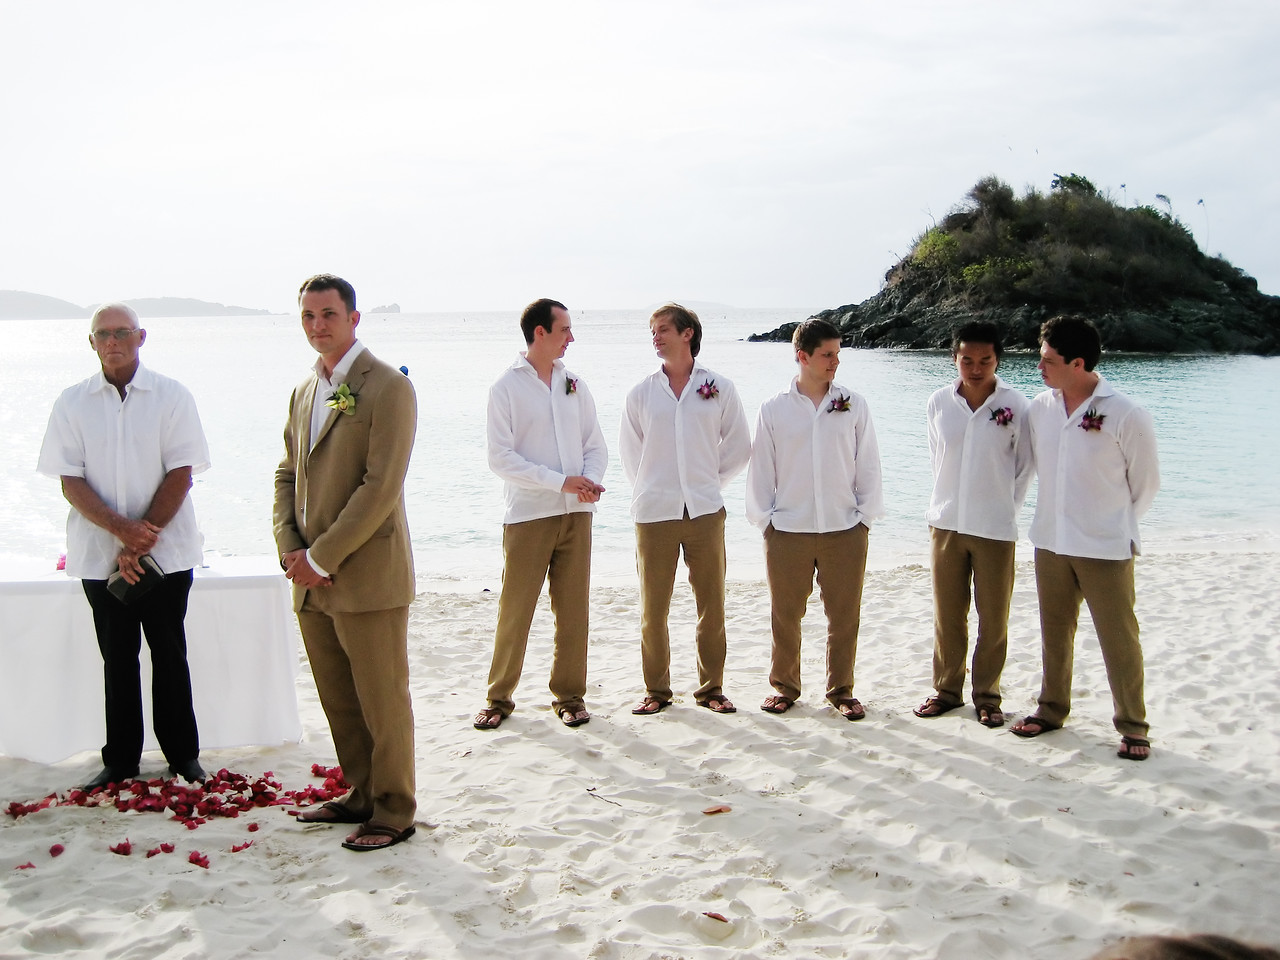 groomsmen in conversation